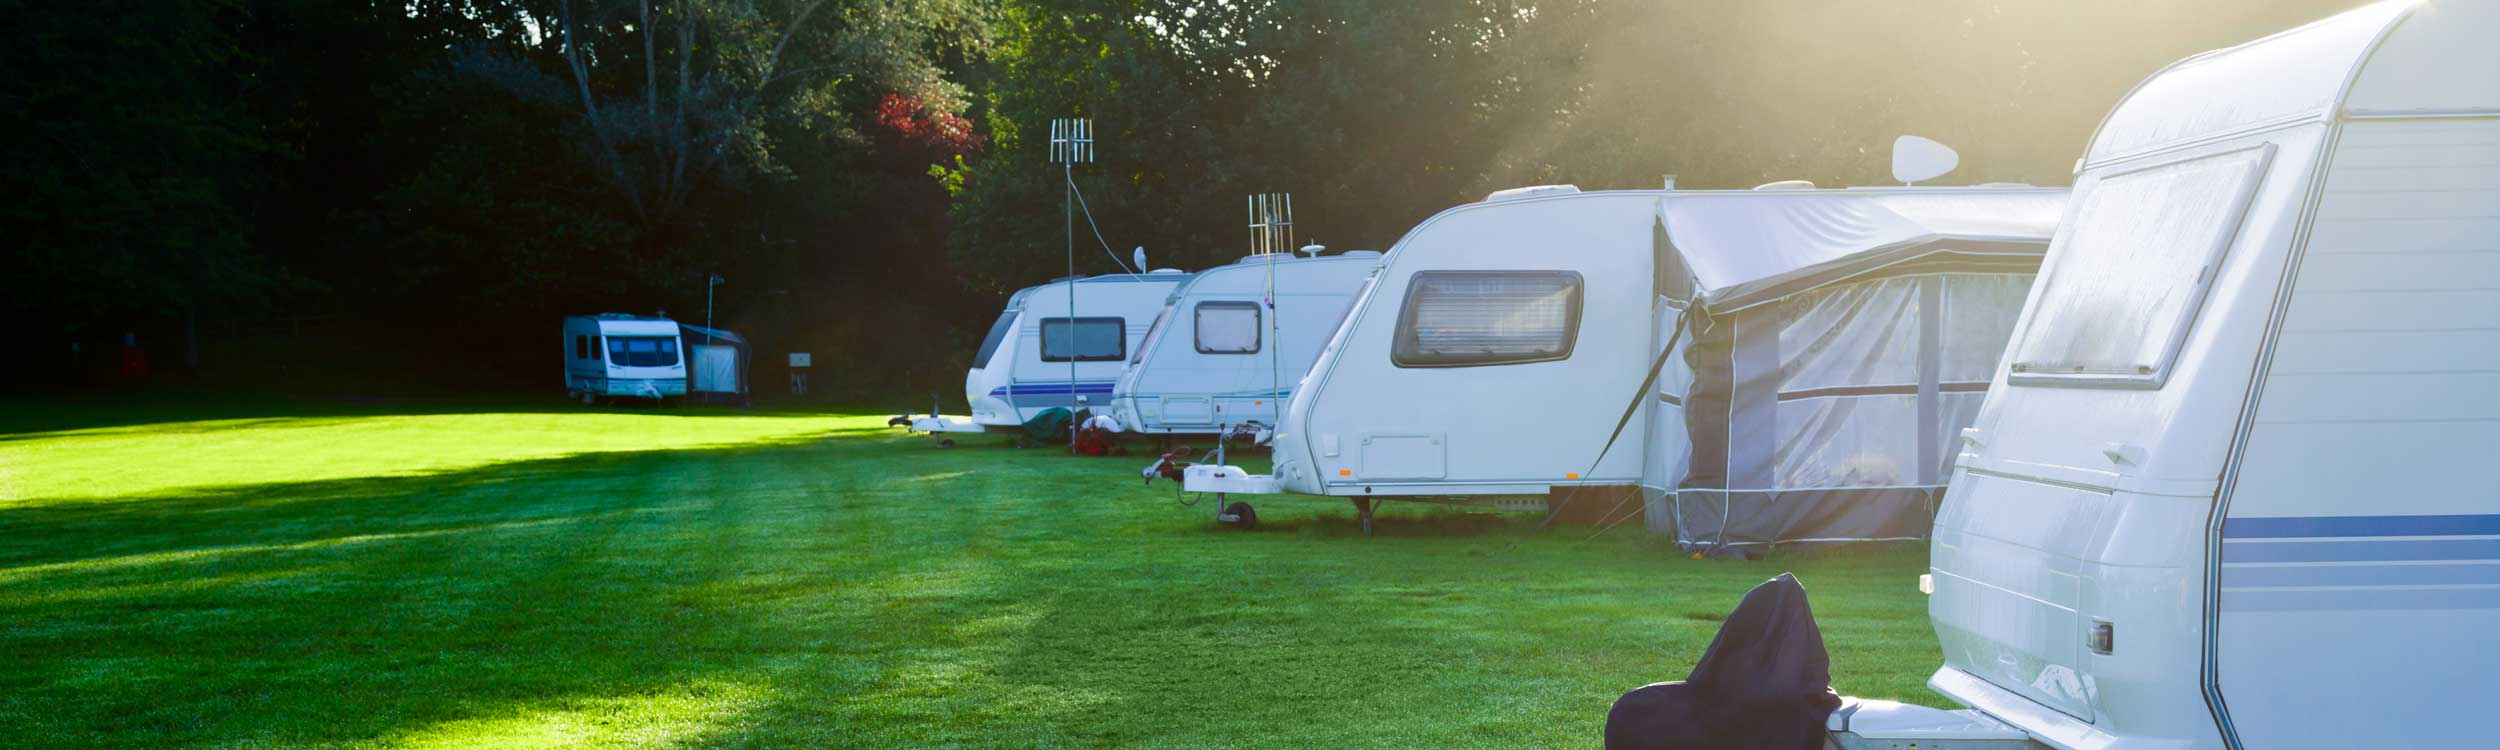 Caravan site at Torworth Grange, Retford, camping and caravanning, pitch up and stay at our lovely campsite near clumber park, sherwood forest, Rufford country park, rural countryside in Nottinghamshire